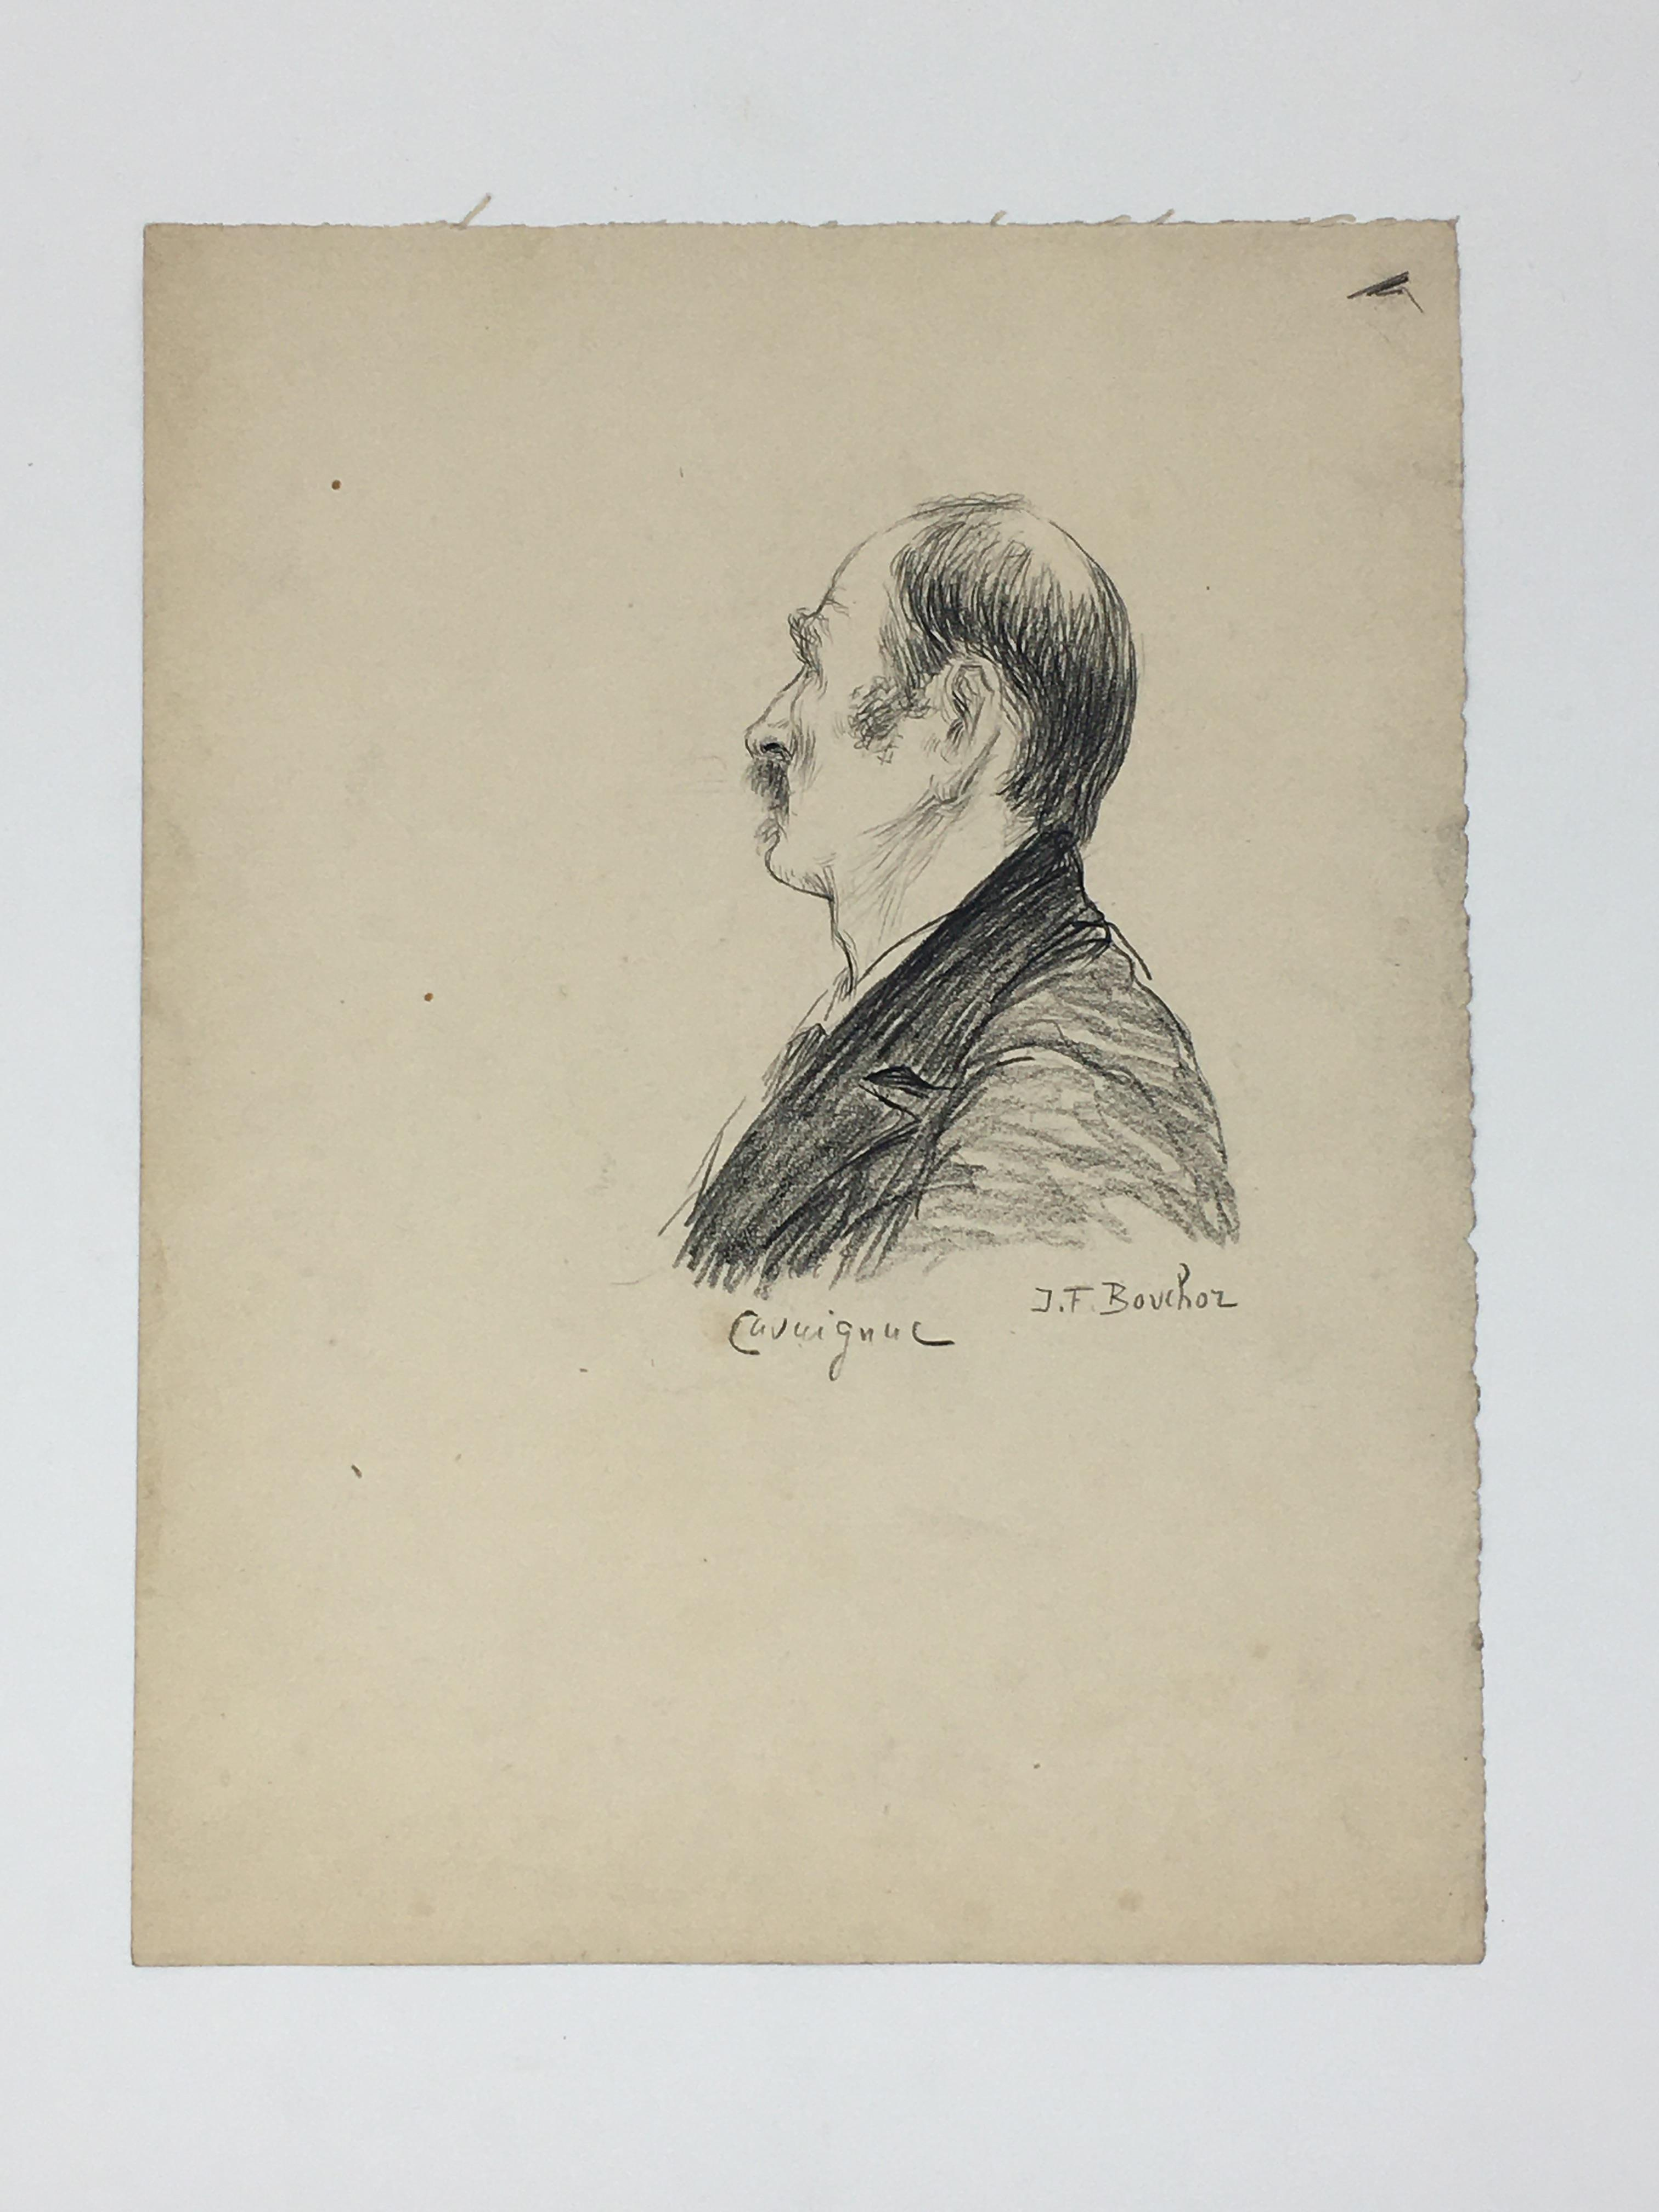 J'Accuse Newspaper, Emile Zola Quote, Signed Dreyfus Portrait, Rare Trial Drawings & Schwartzkoppen - Image 43 of 74